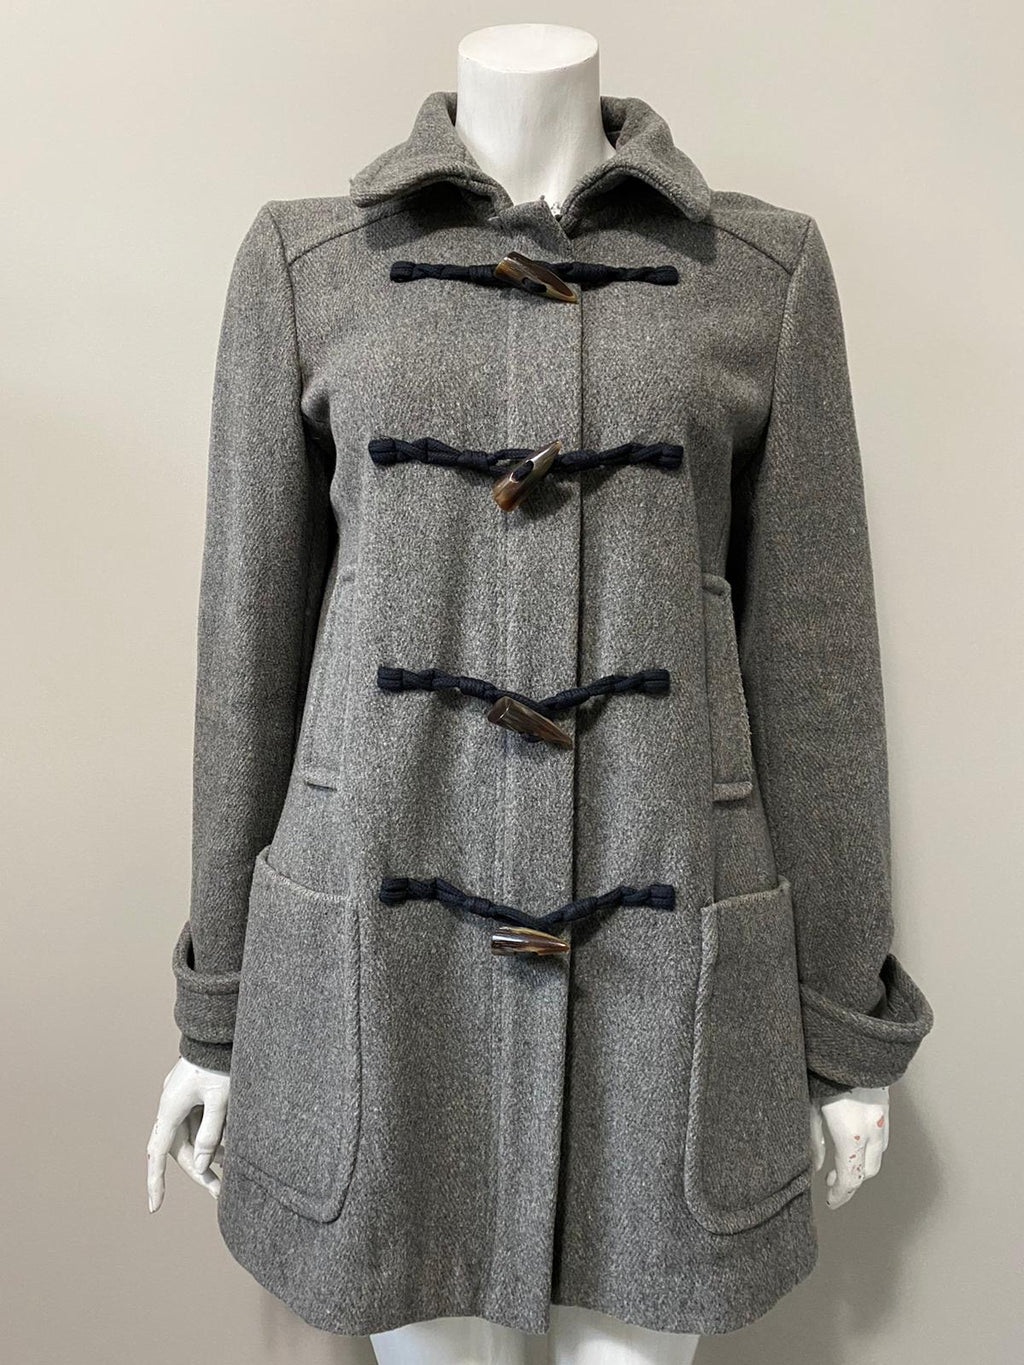 Banana Republic Grey Wool Peacoat Size M